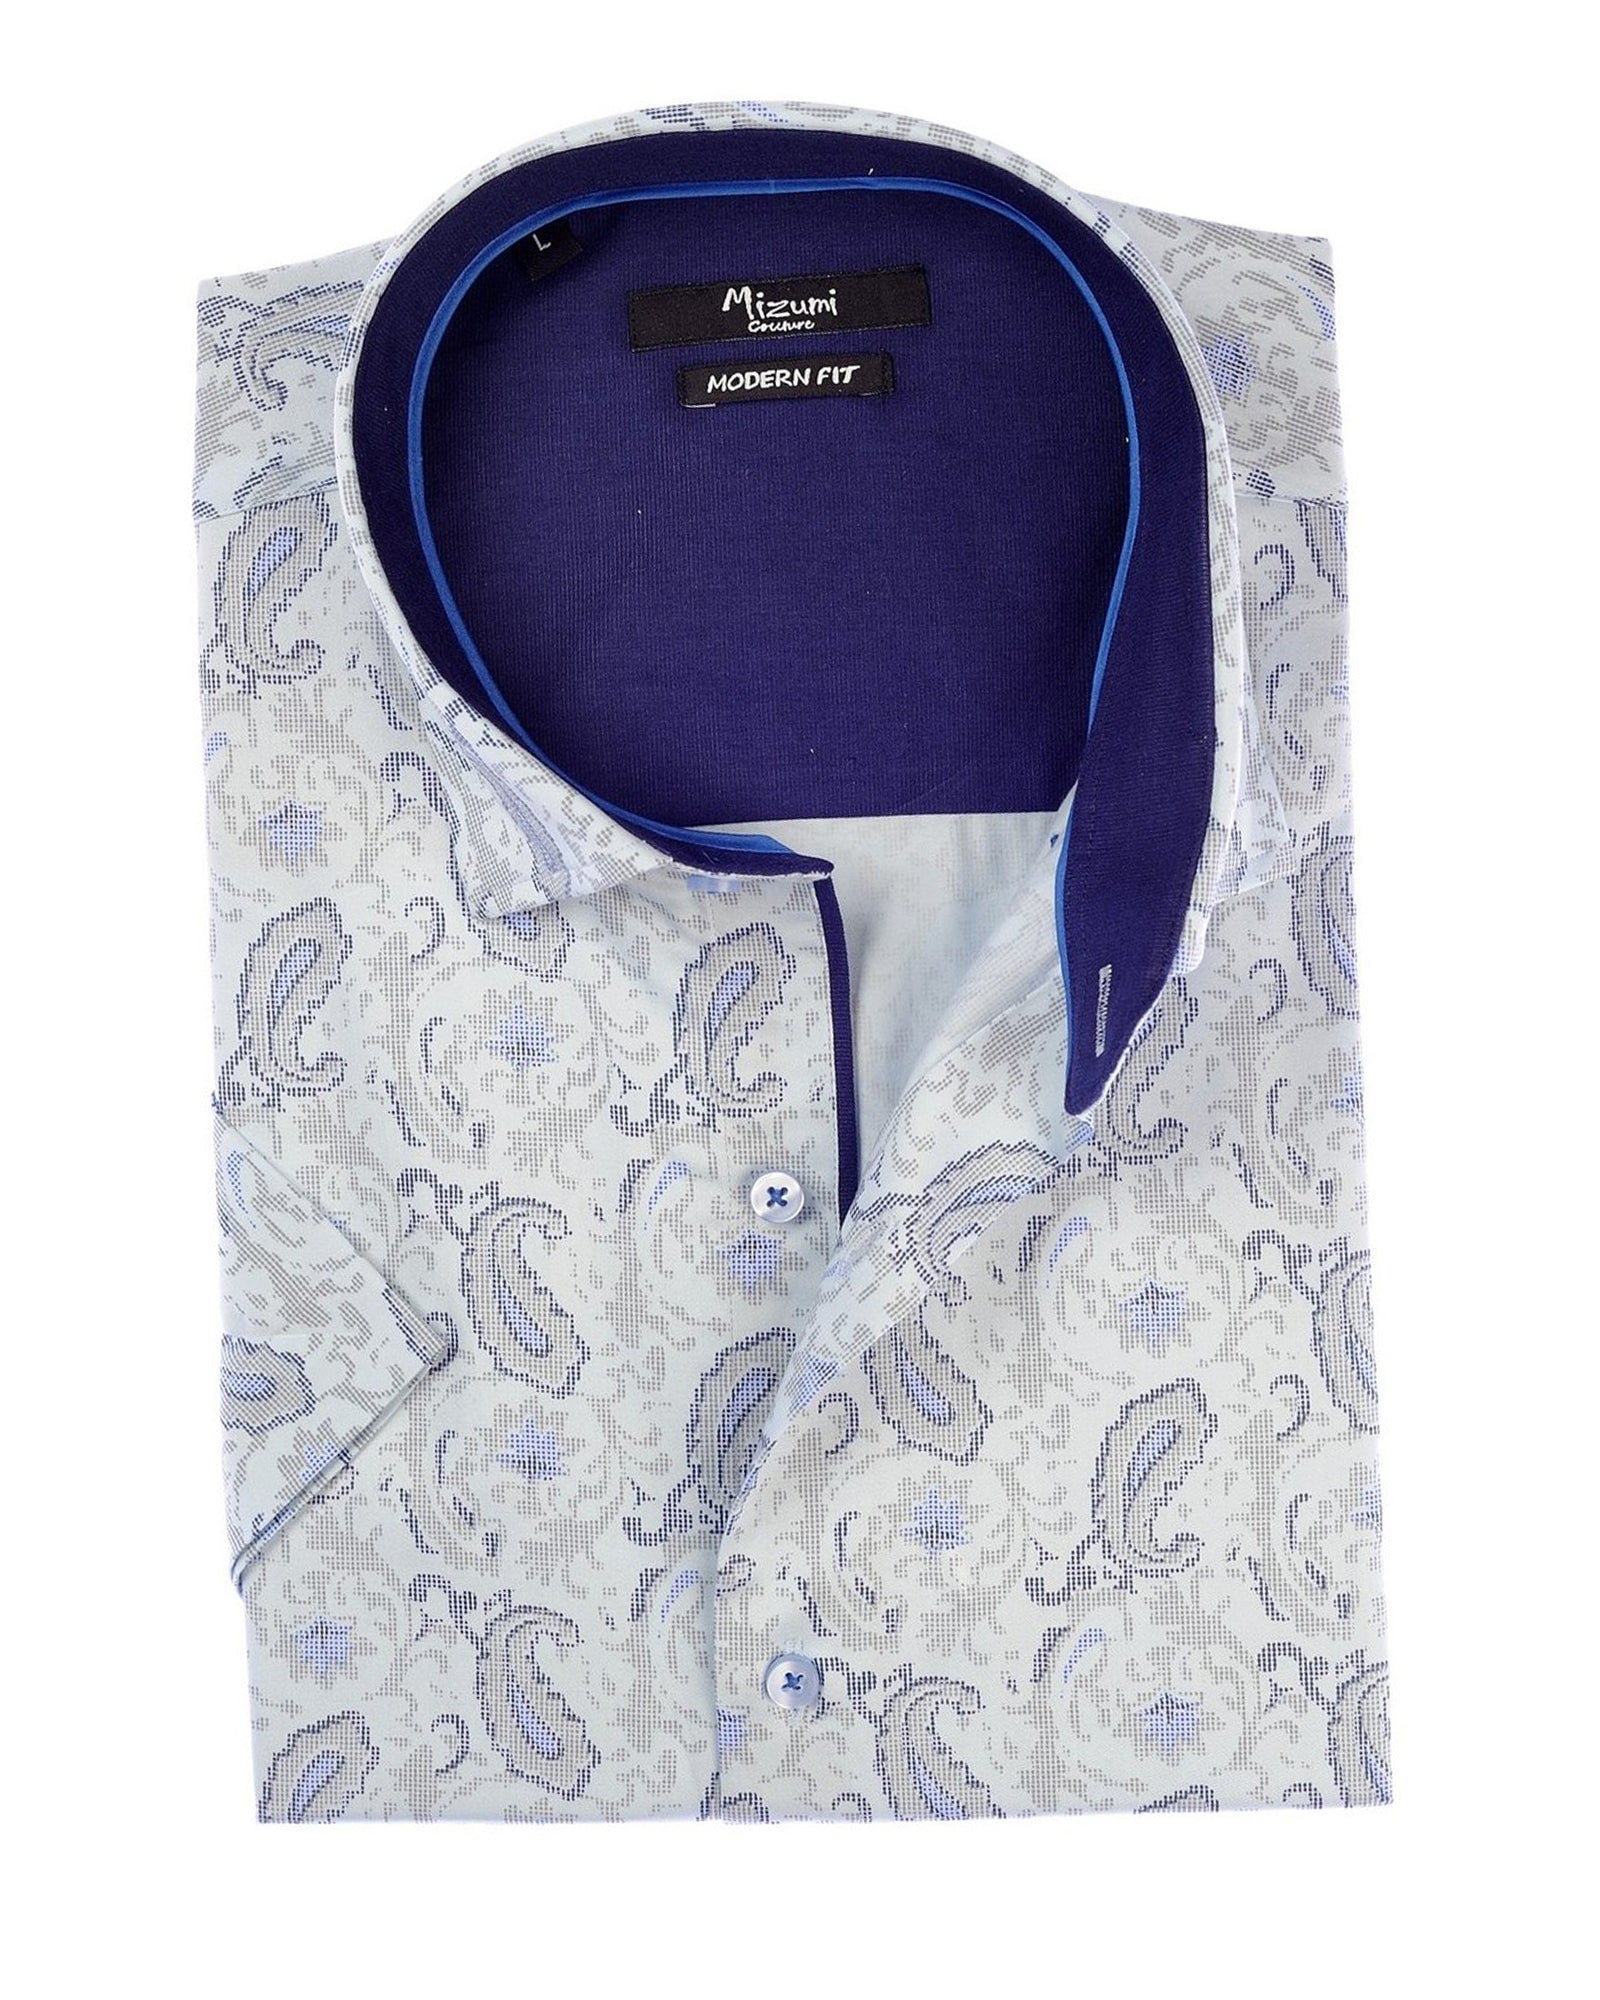 Mizumi Print Short Sleeve Hidden Button Down in Pewter with Blue Paisley - Rainwater's Men's Clothing and Tuxedo Rental